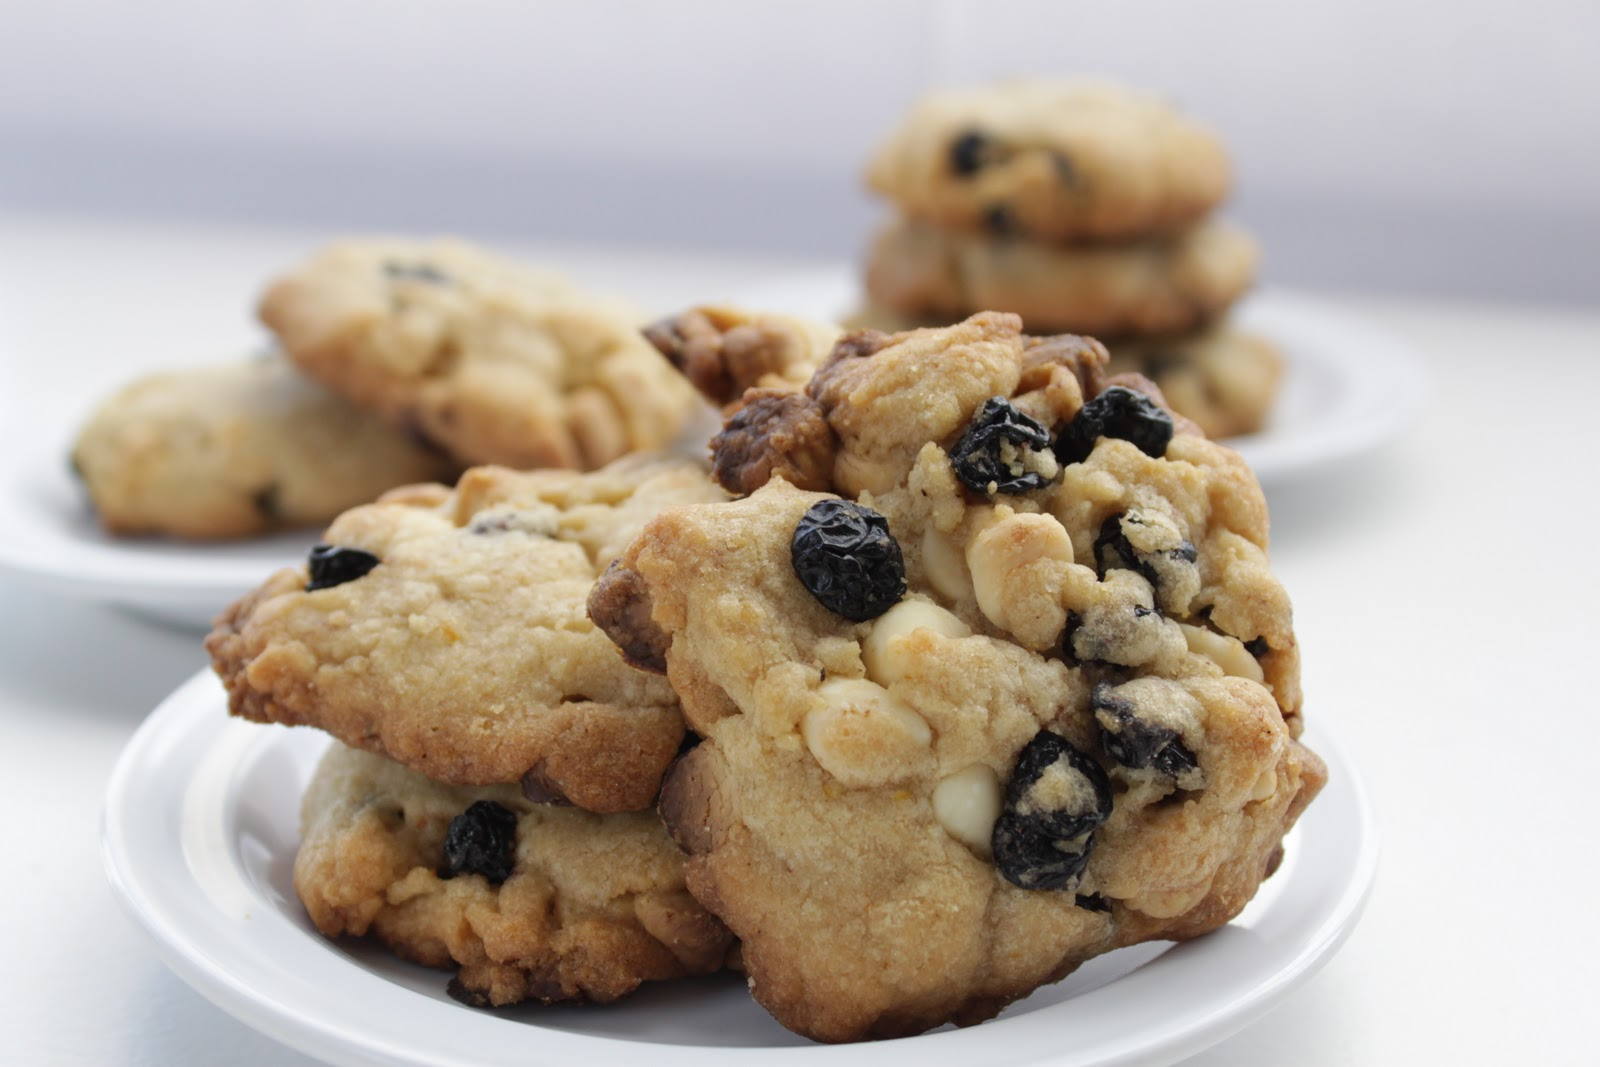 ... Too Short to Skip Dessert: Blueberry and White Chocolate Chip Cookies